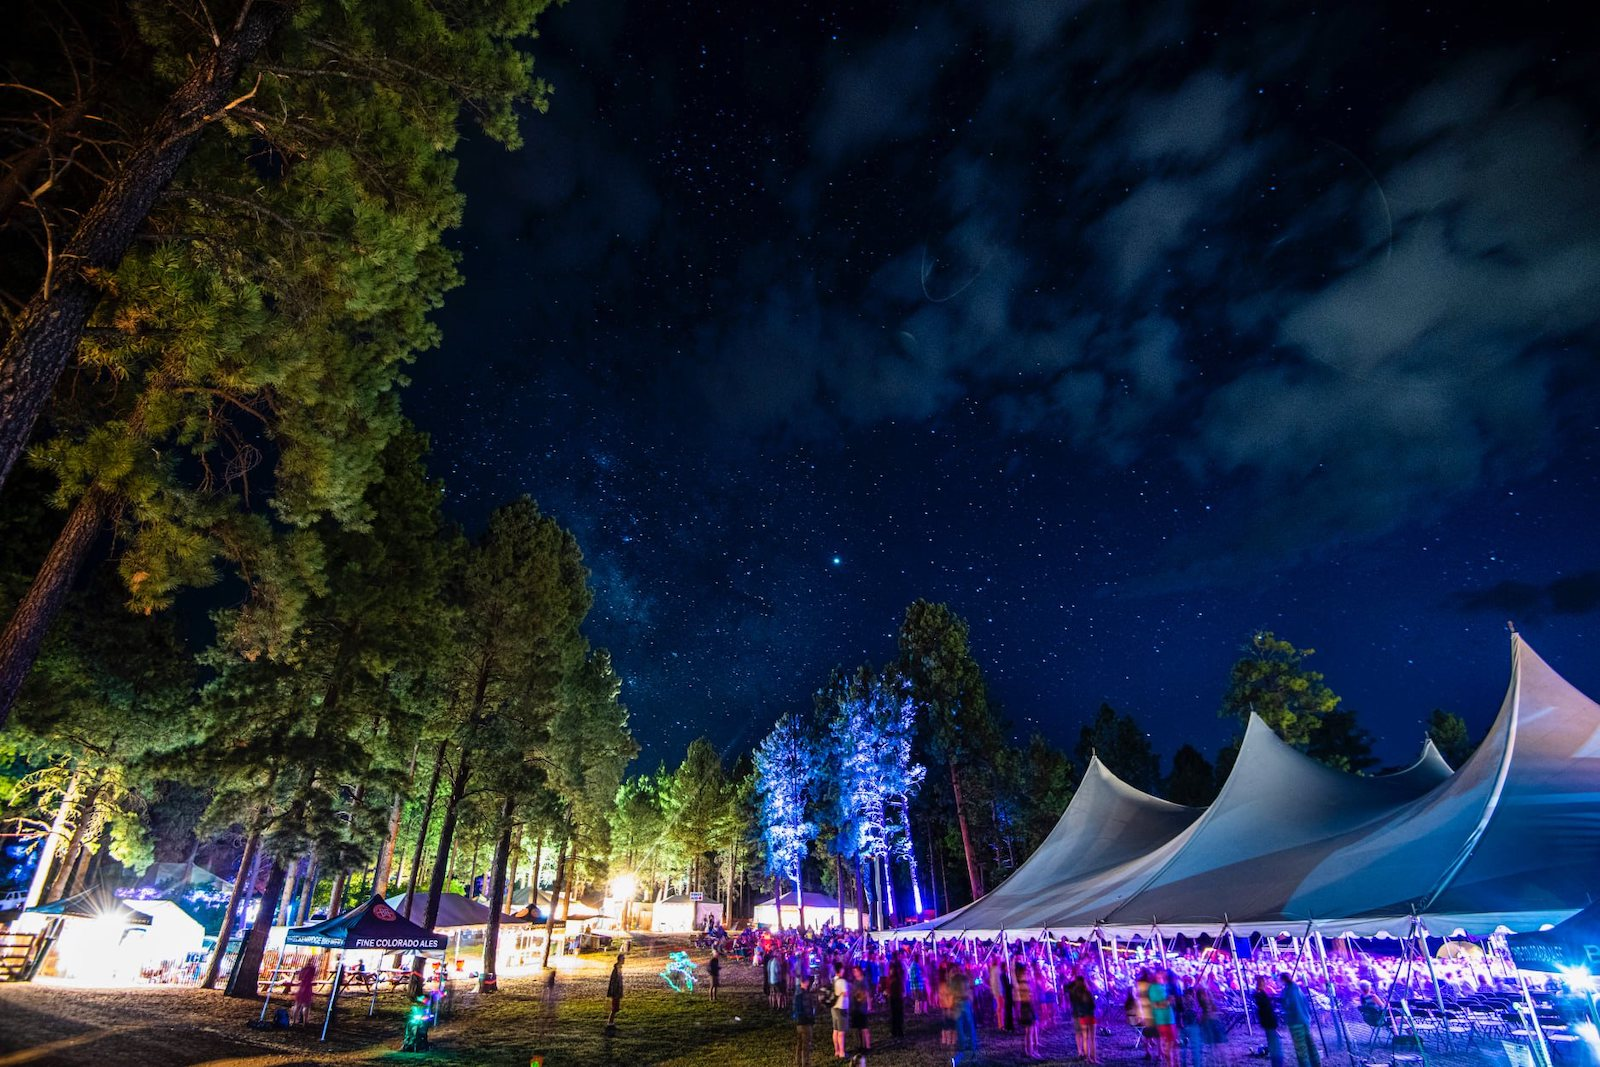 Image of the Four Corners Music Festival in Pagosa Springs, Colorado at night